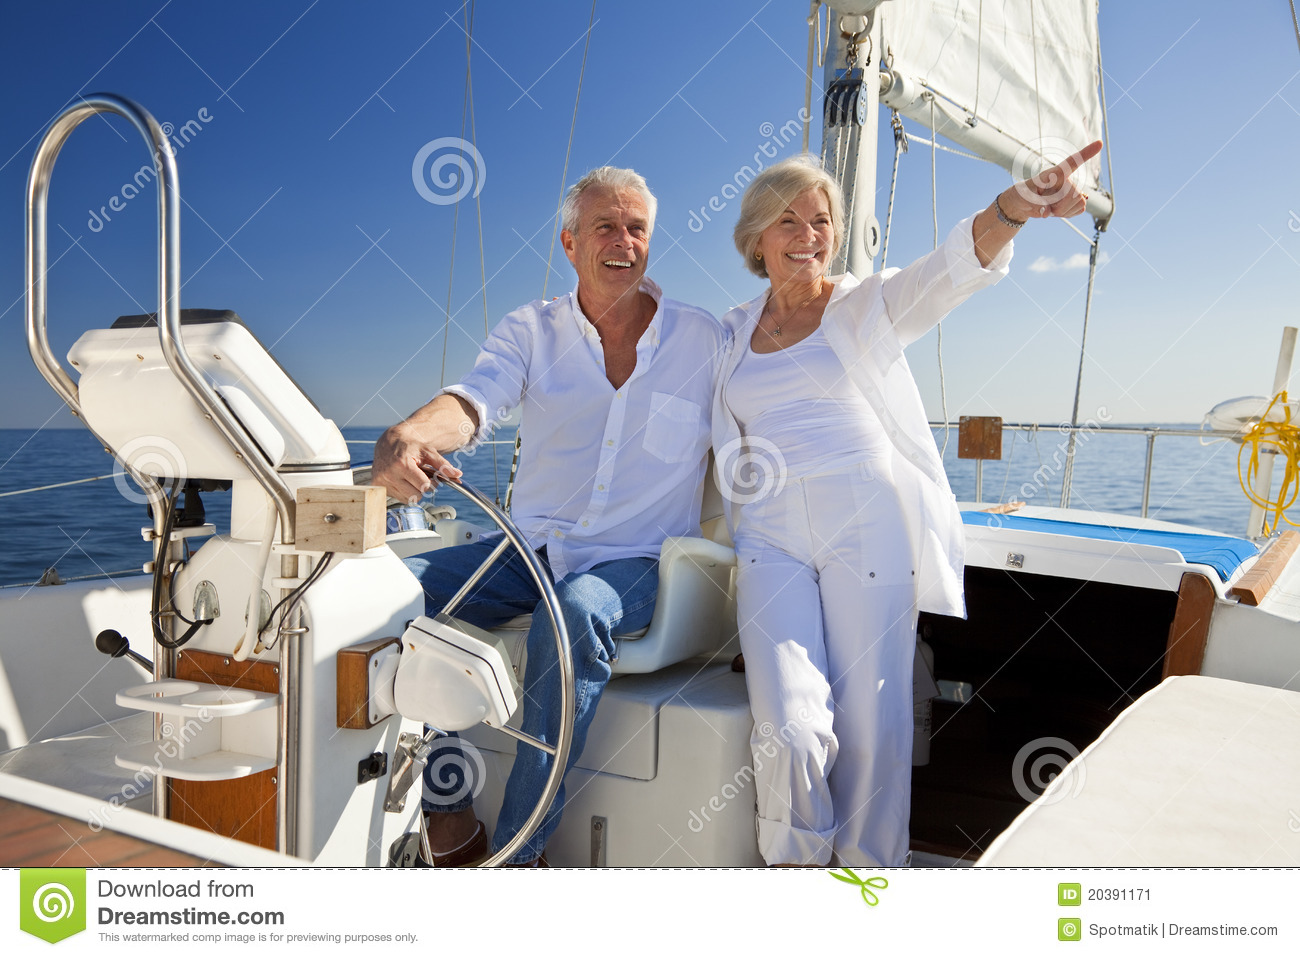 Happy Senior Couple At The Wheel of a Sail Boat